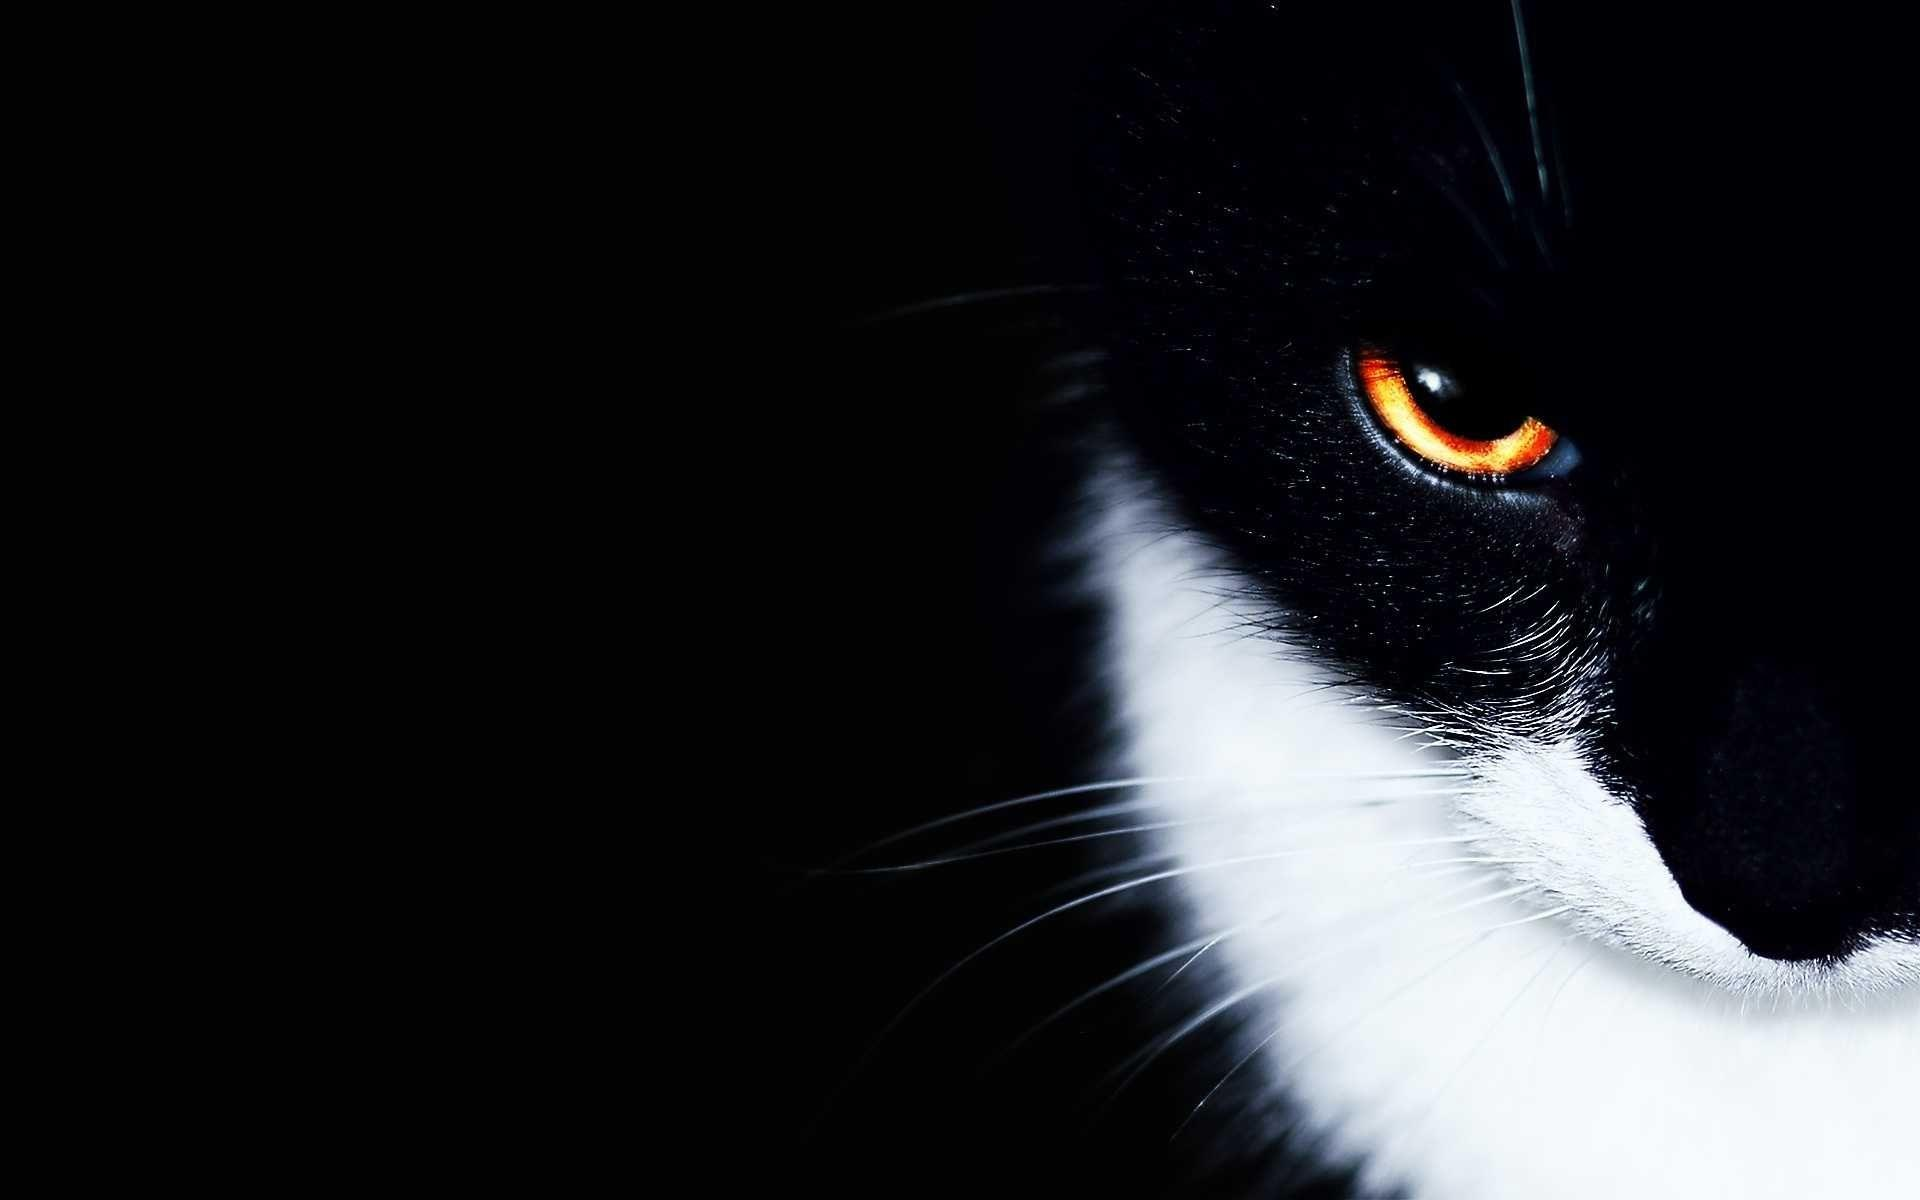 black and white cat wallpapers - wallpaper cave